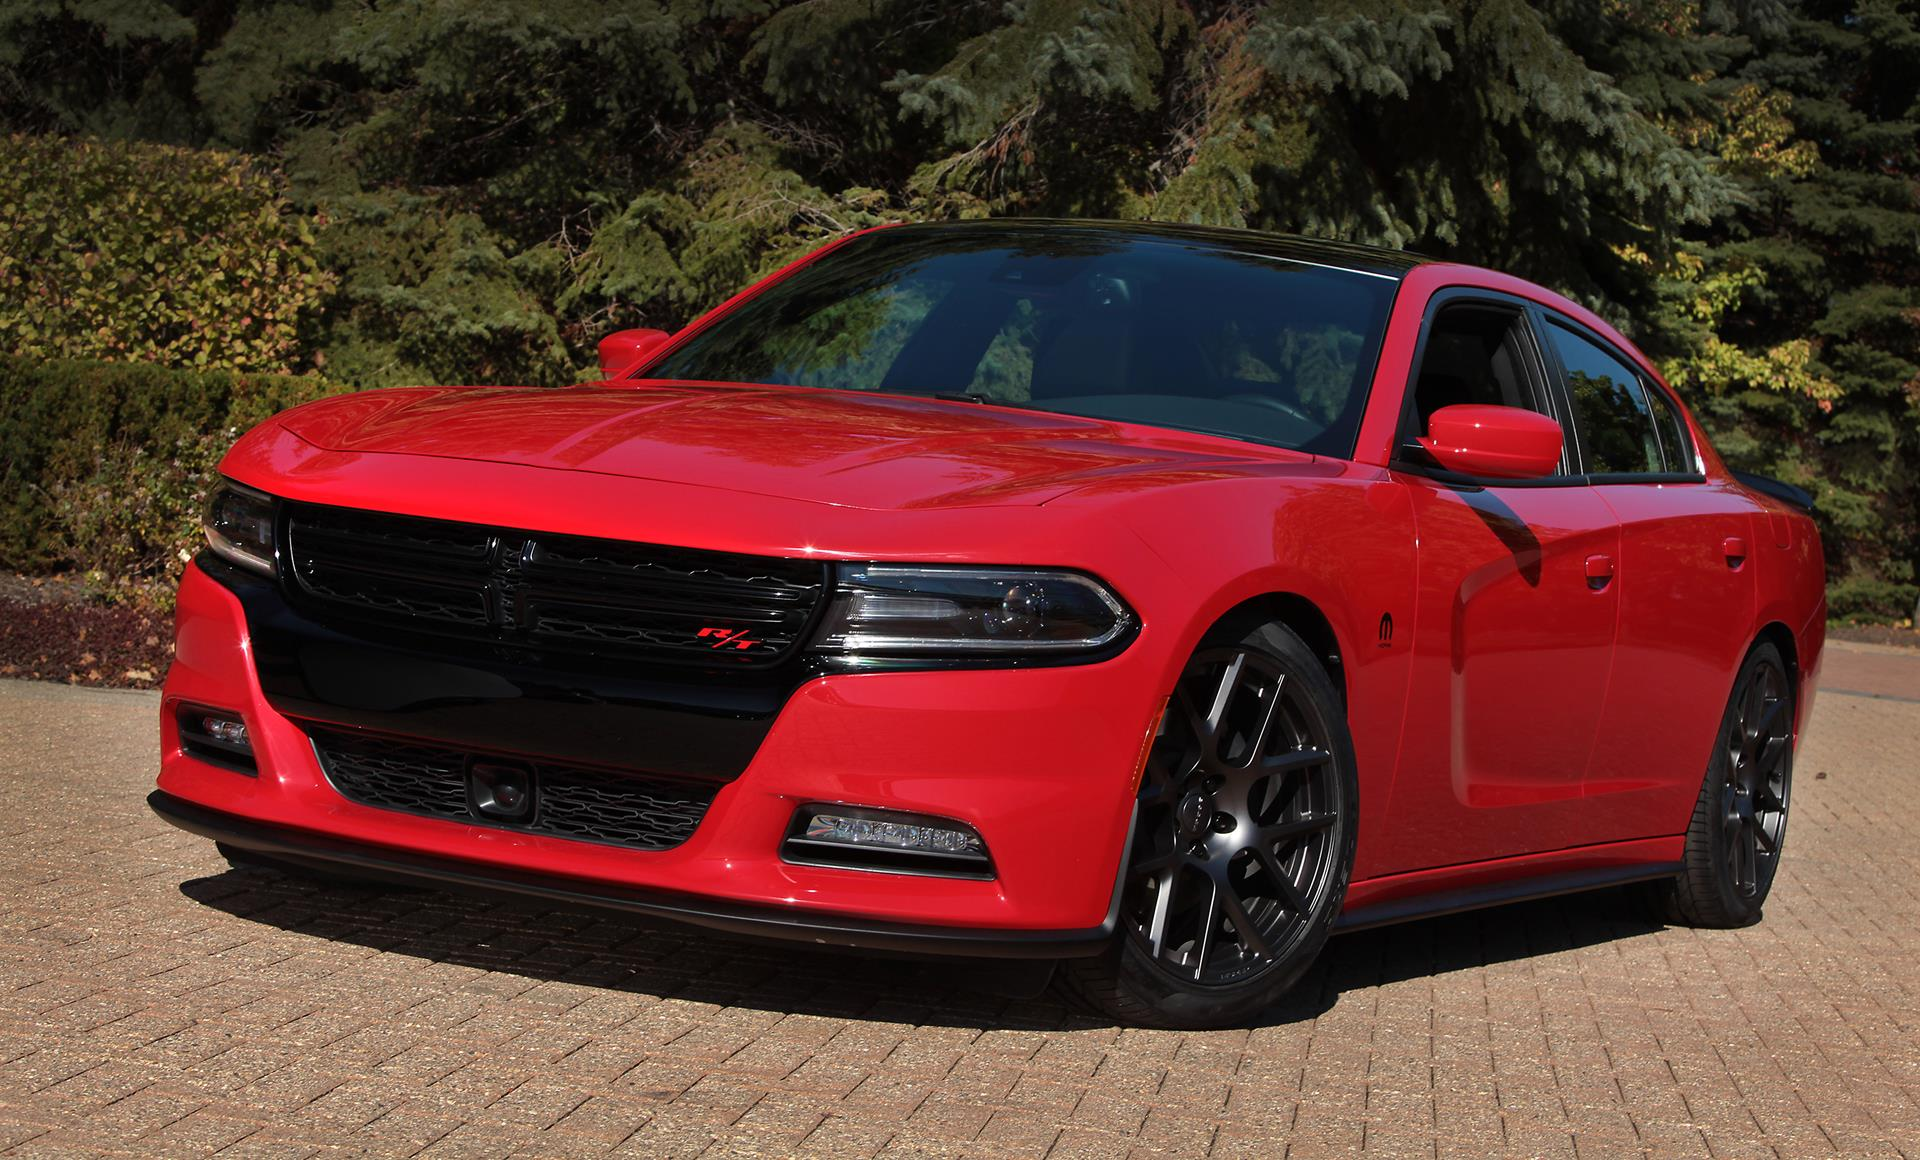 2014 Dodge Charger R T Mopar Concept News and Information Research